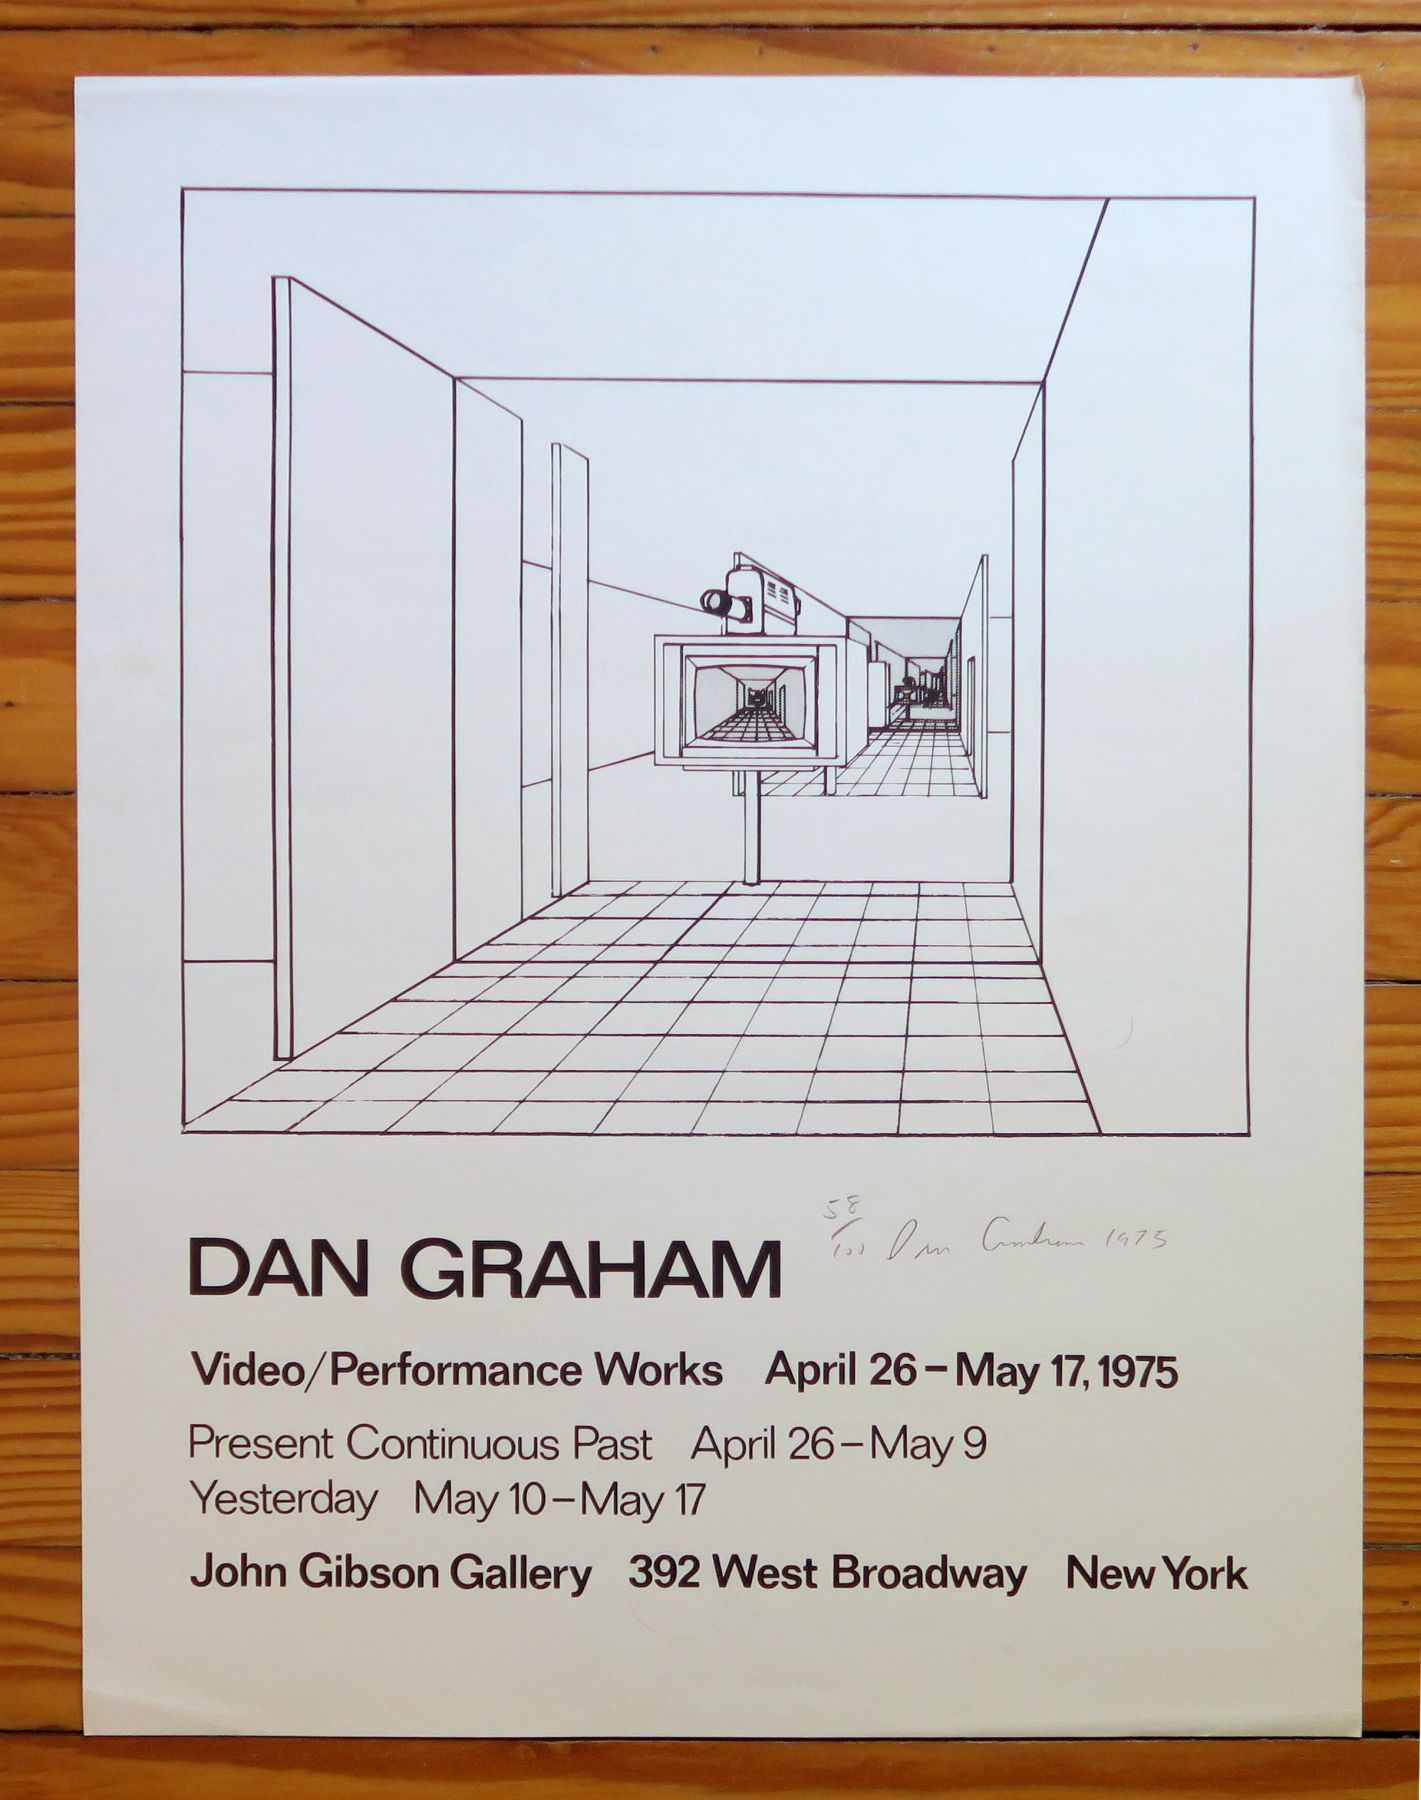 Alternate Projects, Dan Graham: Video/Performance Works